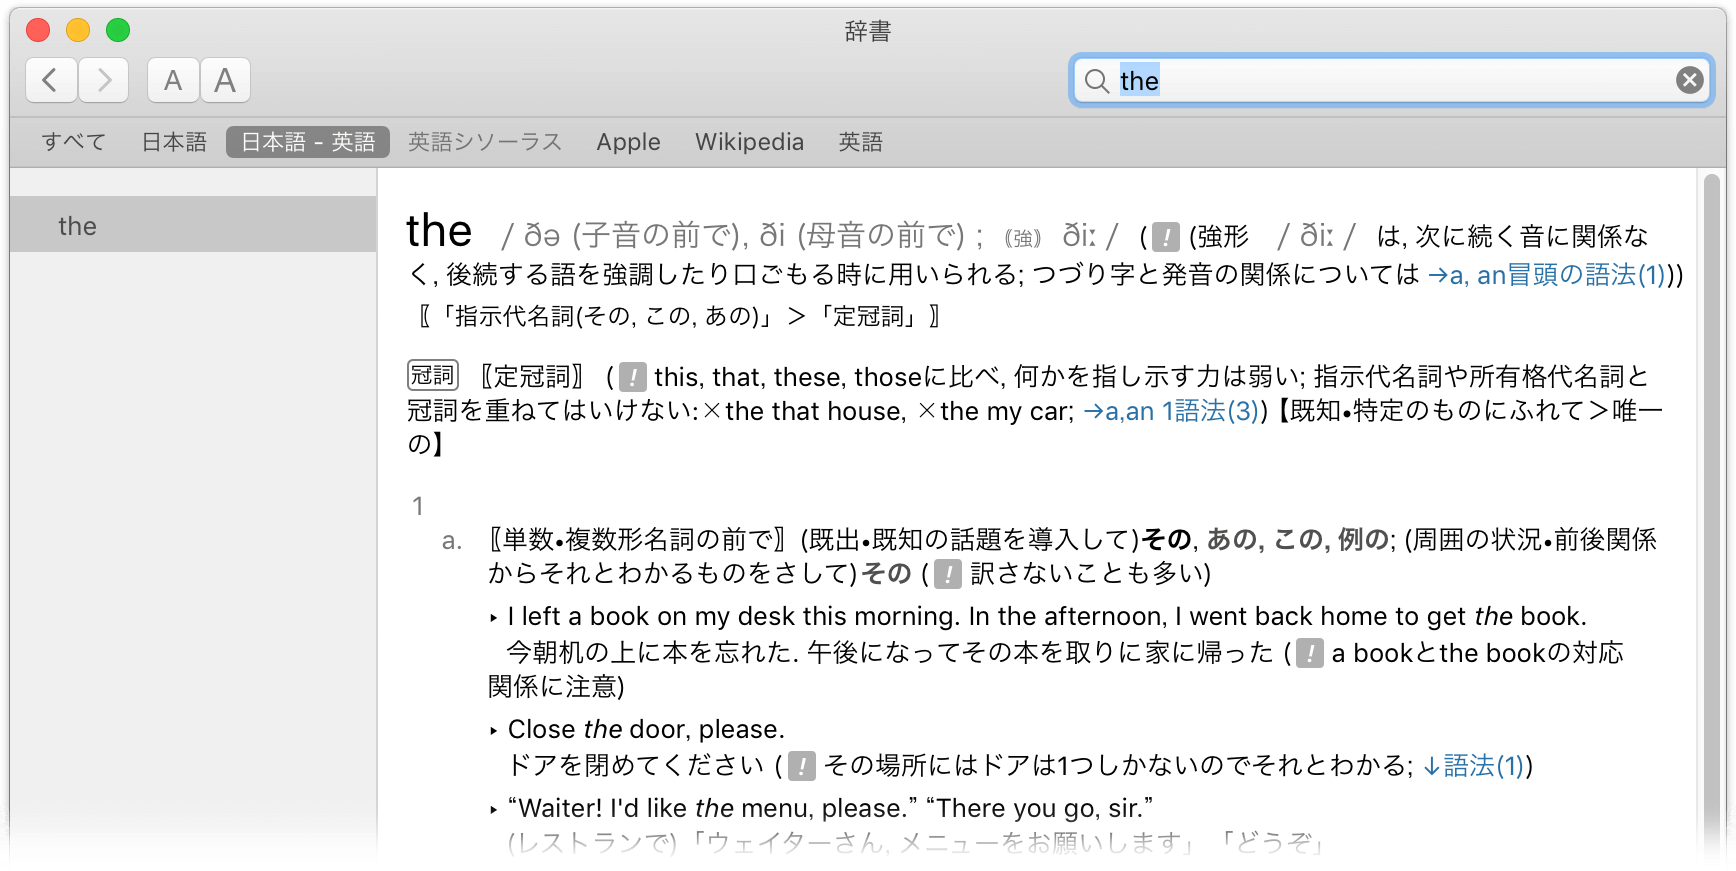 These 発音